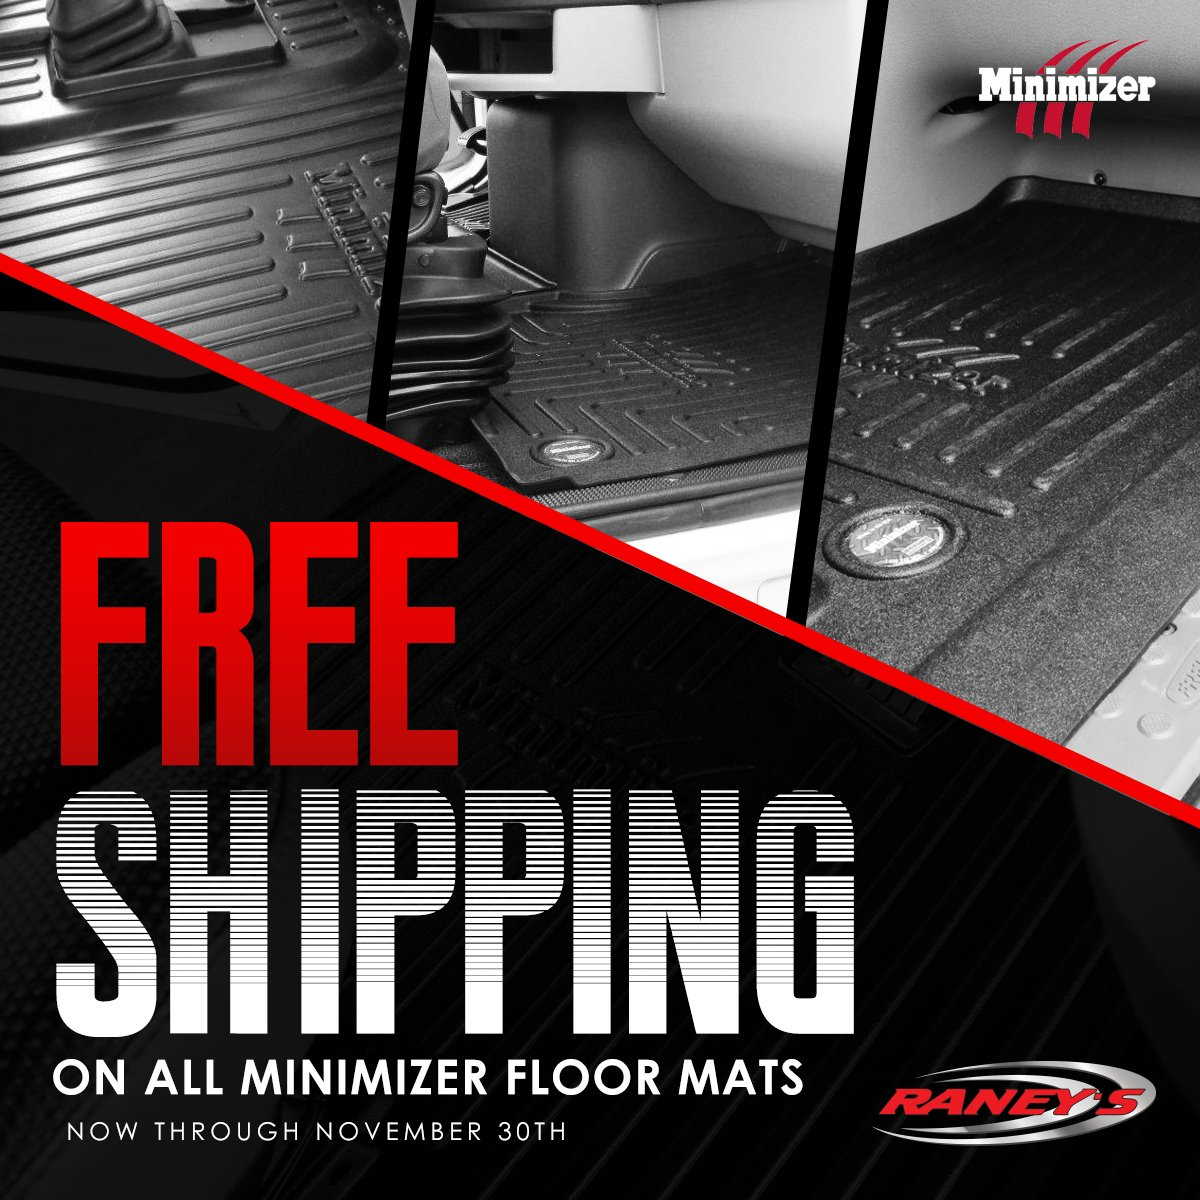 automotive mats premium min for minimizer grey ford classic com amazon select mat models mack weathertech ac dp rubber floor